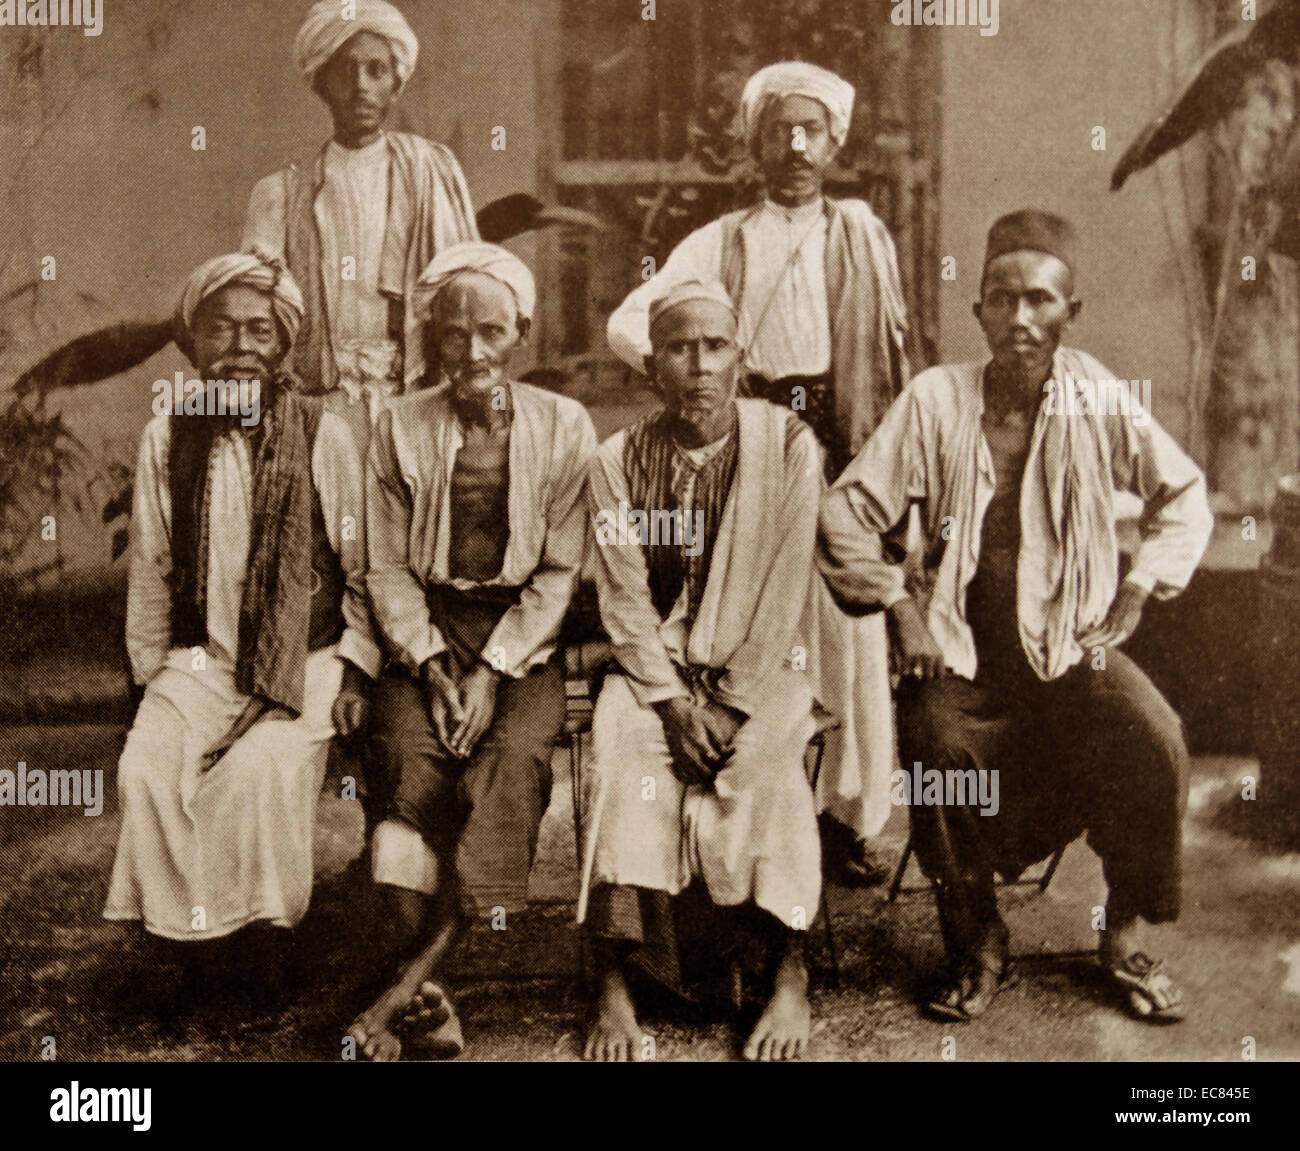 Moslem pilgrims from Aceh 1900. - Stock Image